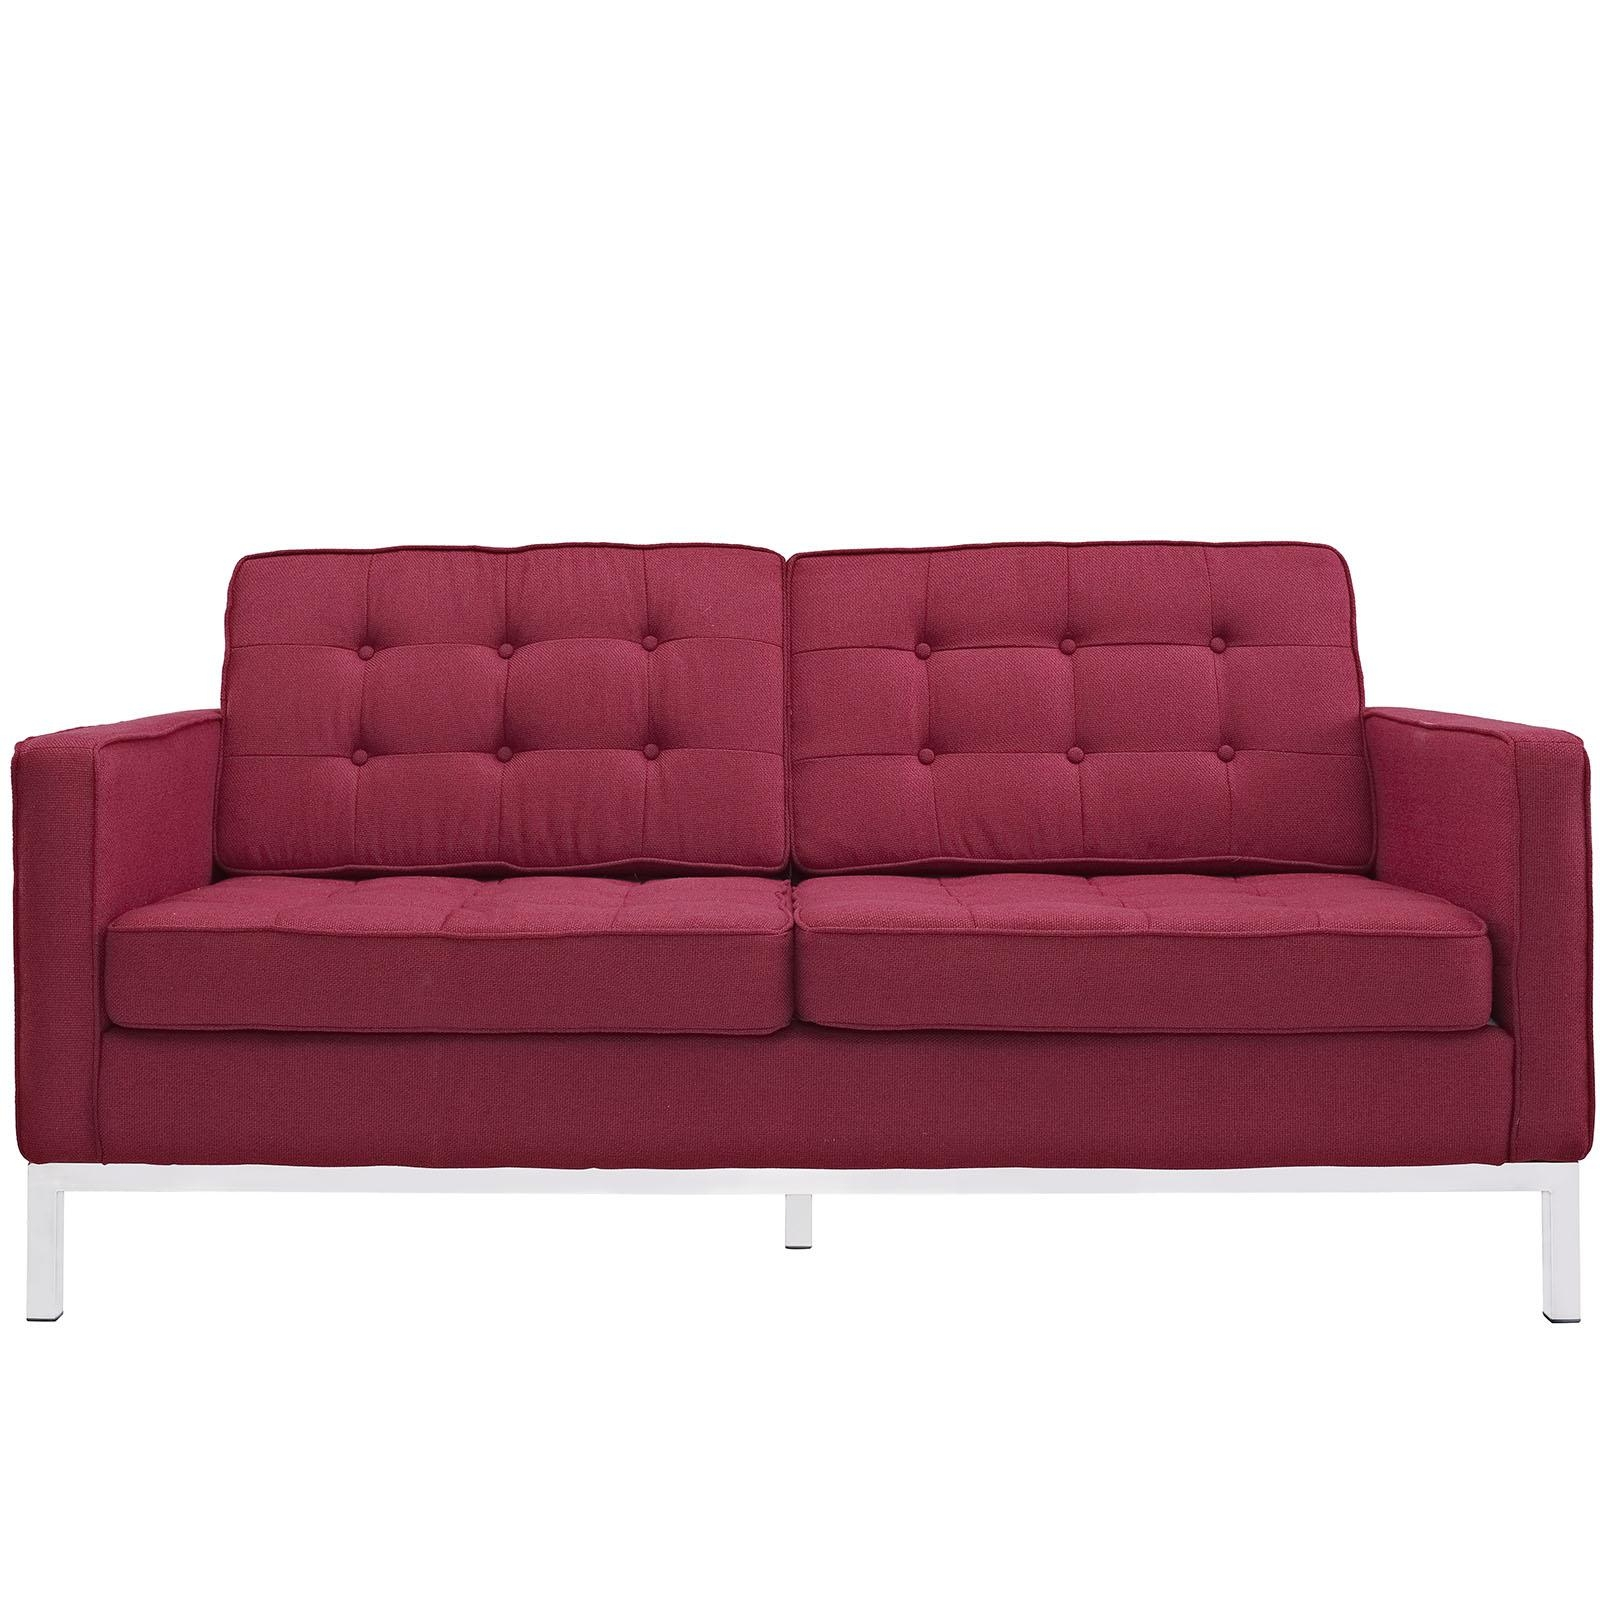 Florence Knoll Style Loveseat Couch – Wool With Regard To Florence Sofas And Loveseats (View 11 of 20)